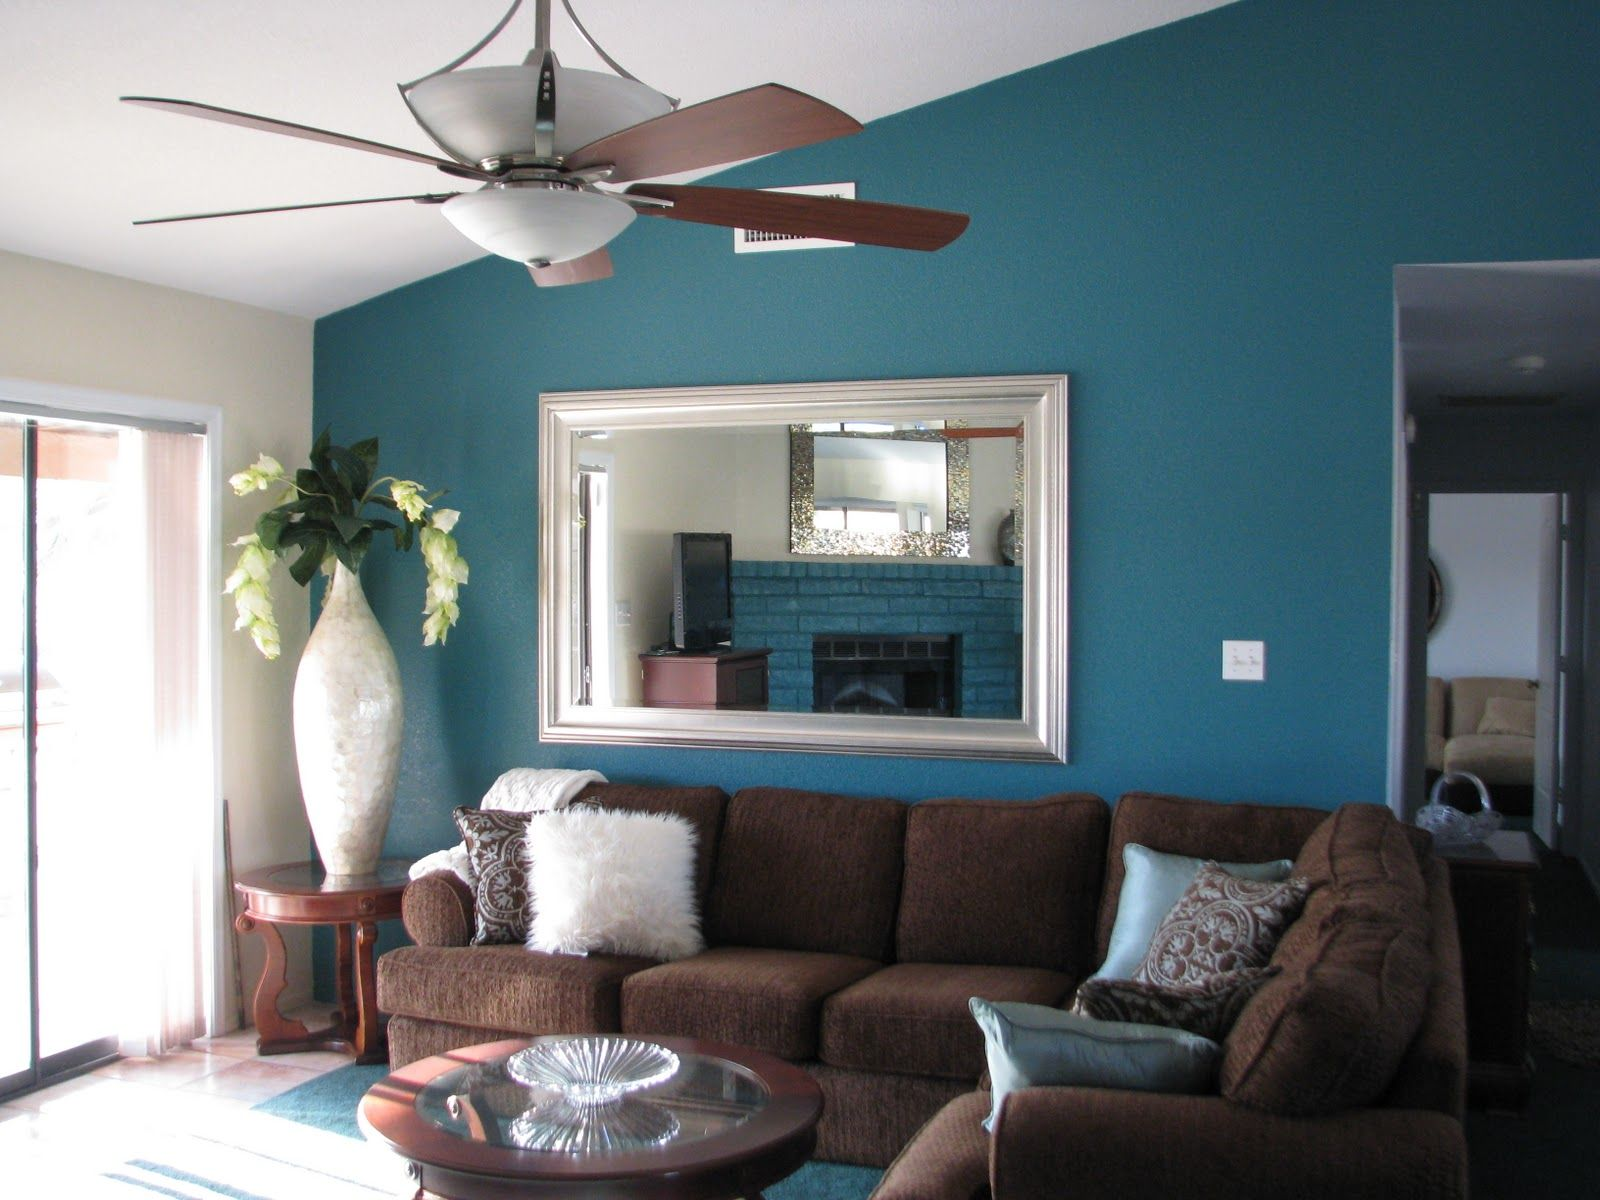 Navy Blue Living Room Wall Will Looks Harmonious With Dark Brown Sofa Description From